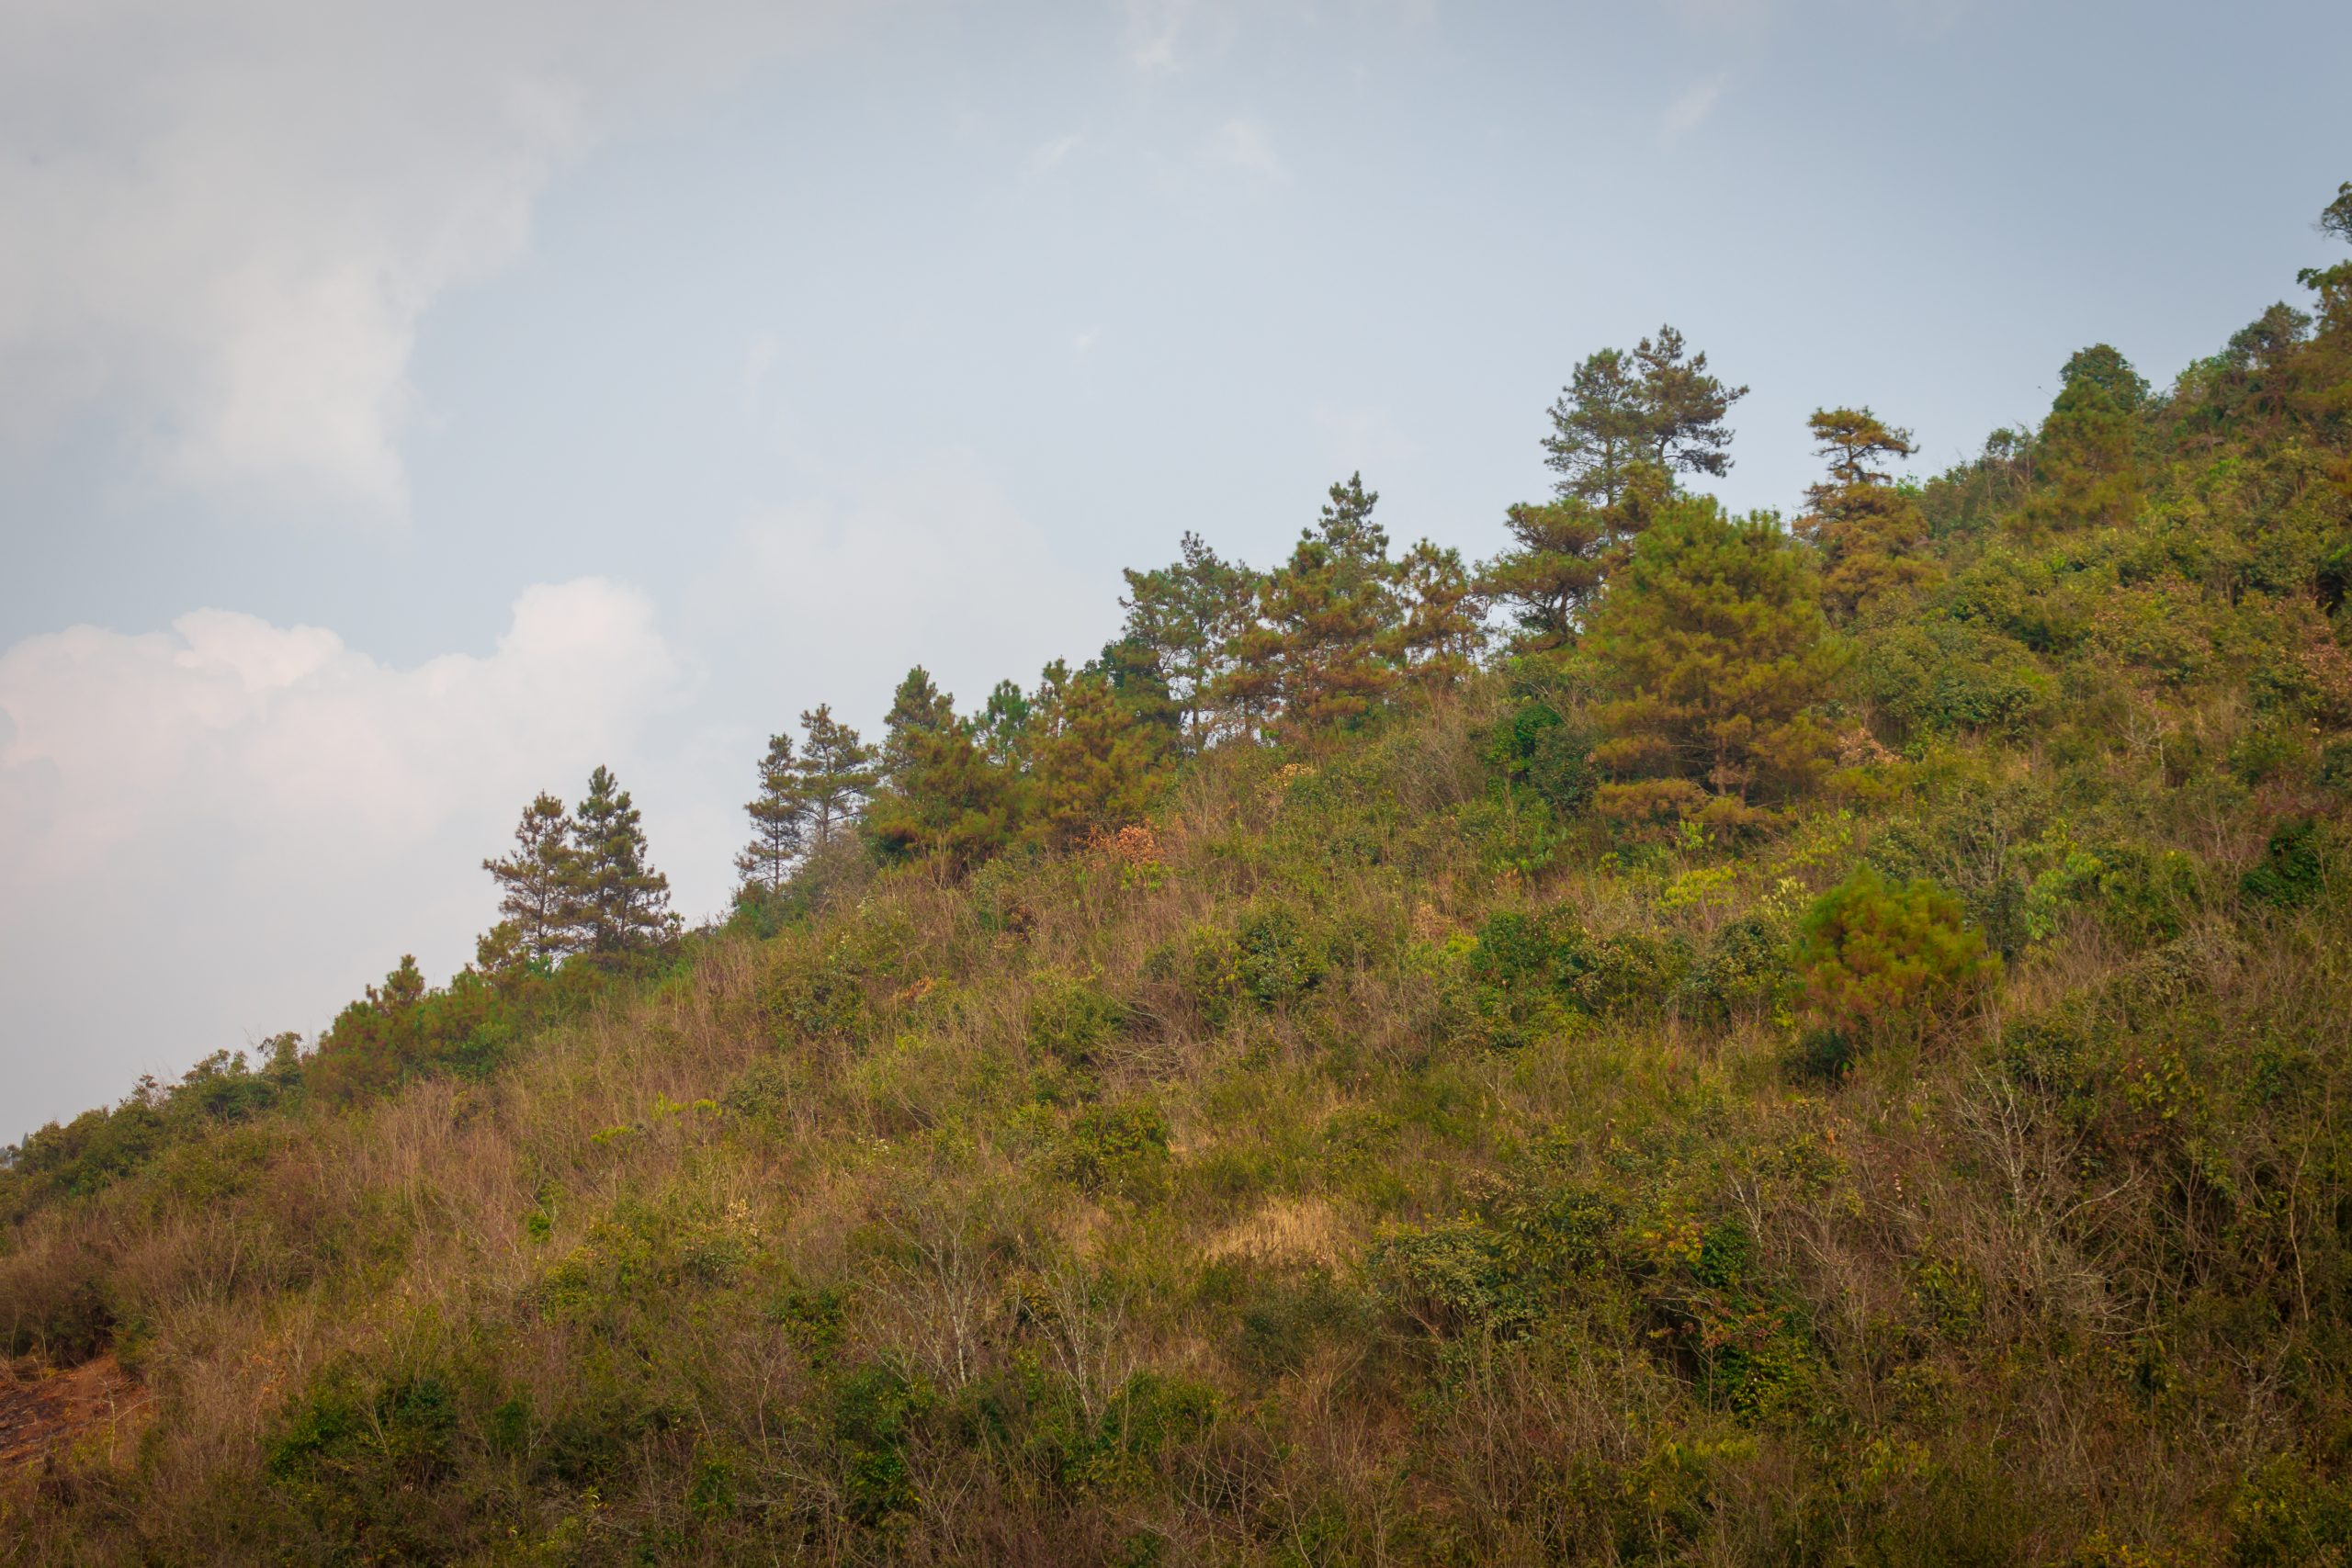 Trees and grass on a hill